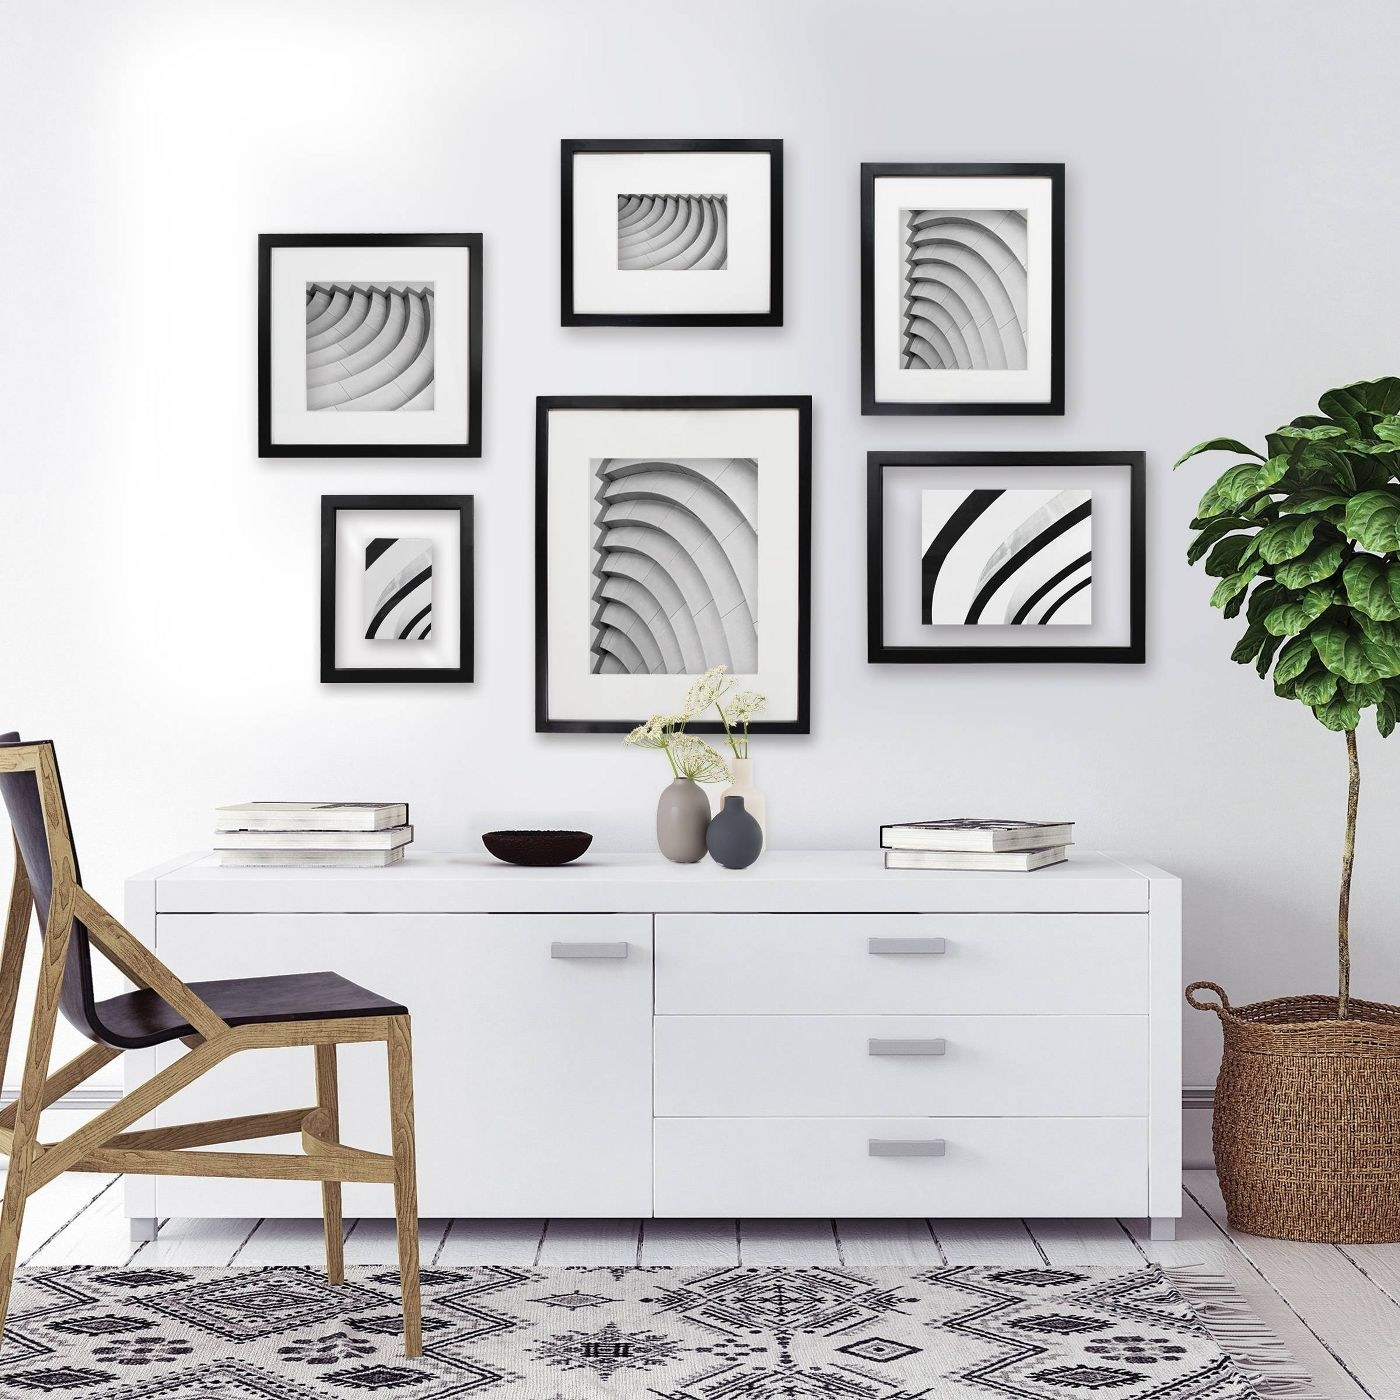 An arrangement of picture frames above an entry table